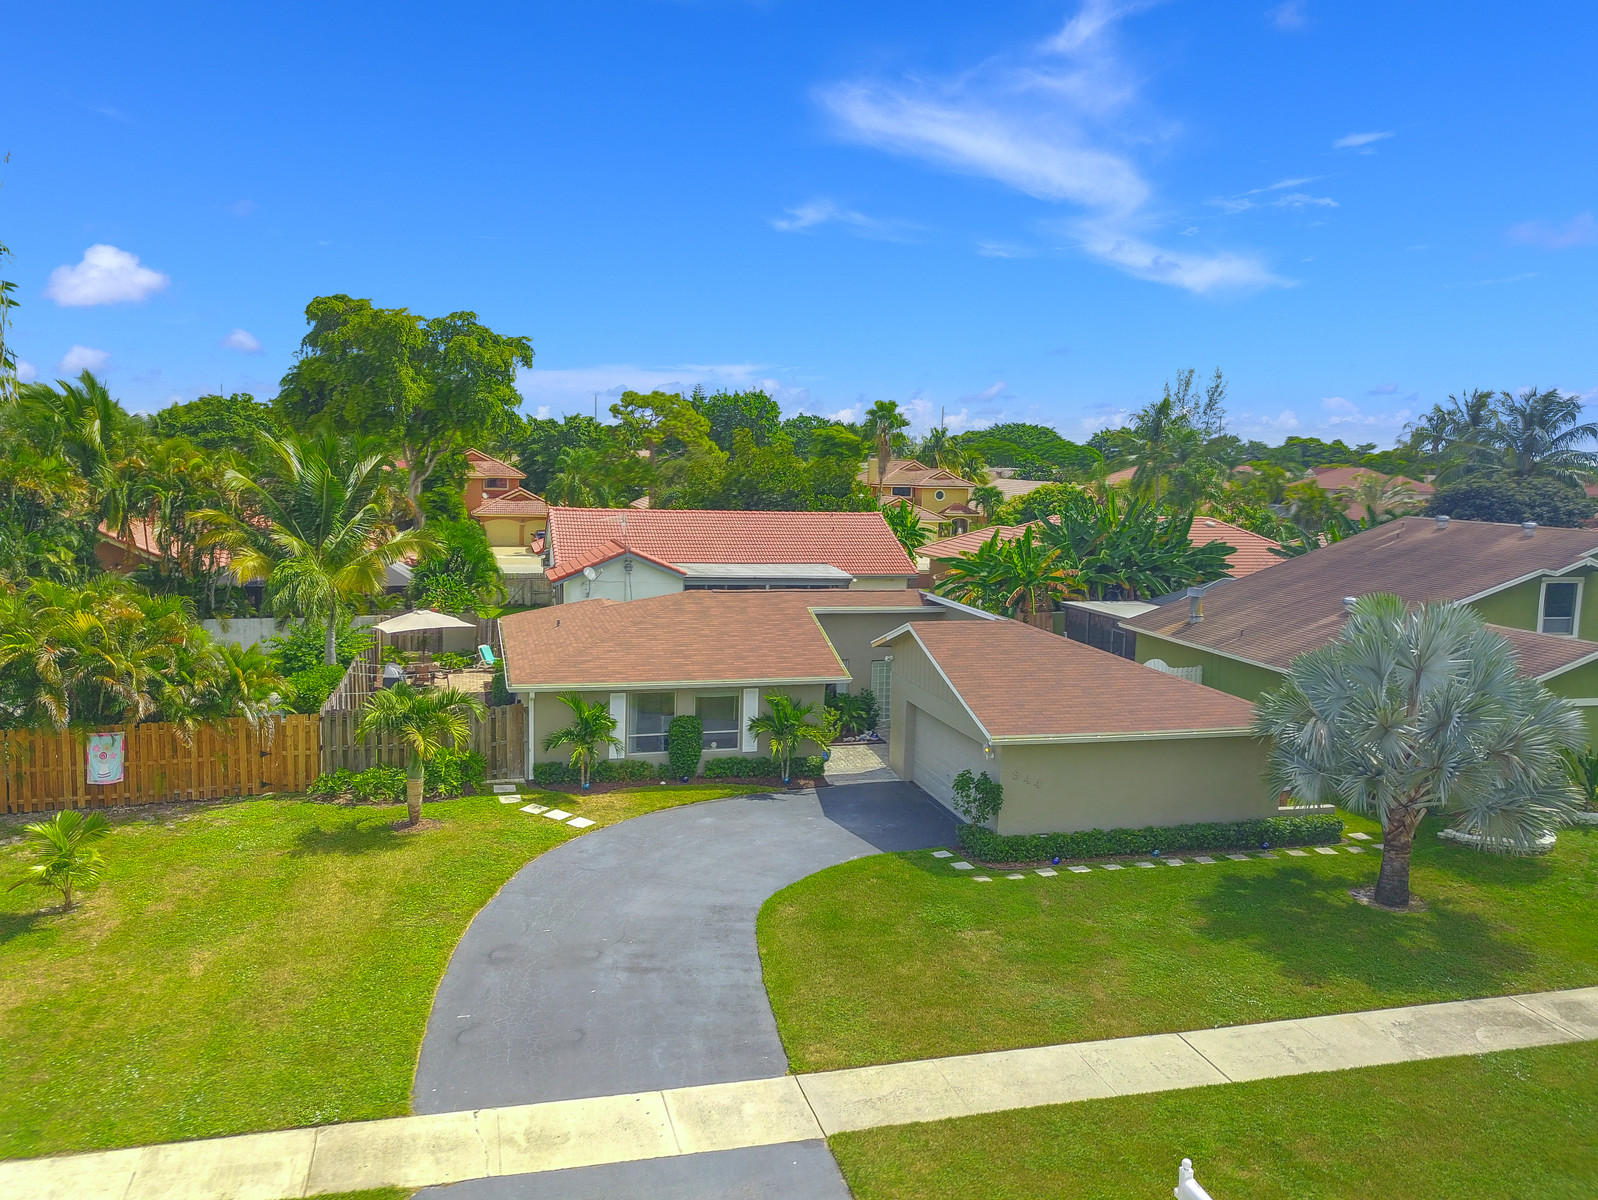 Photo of 344 NW 38th Way, Deerfield Beach, FL 33442